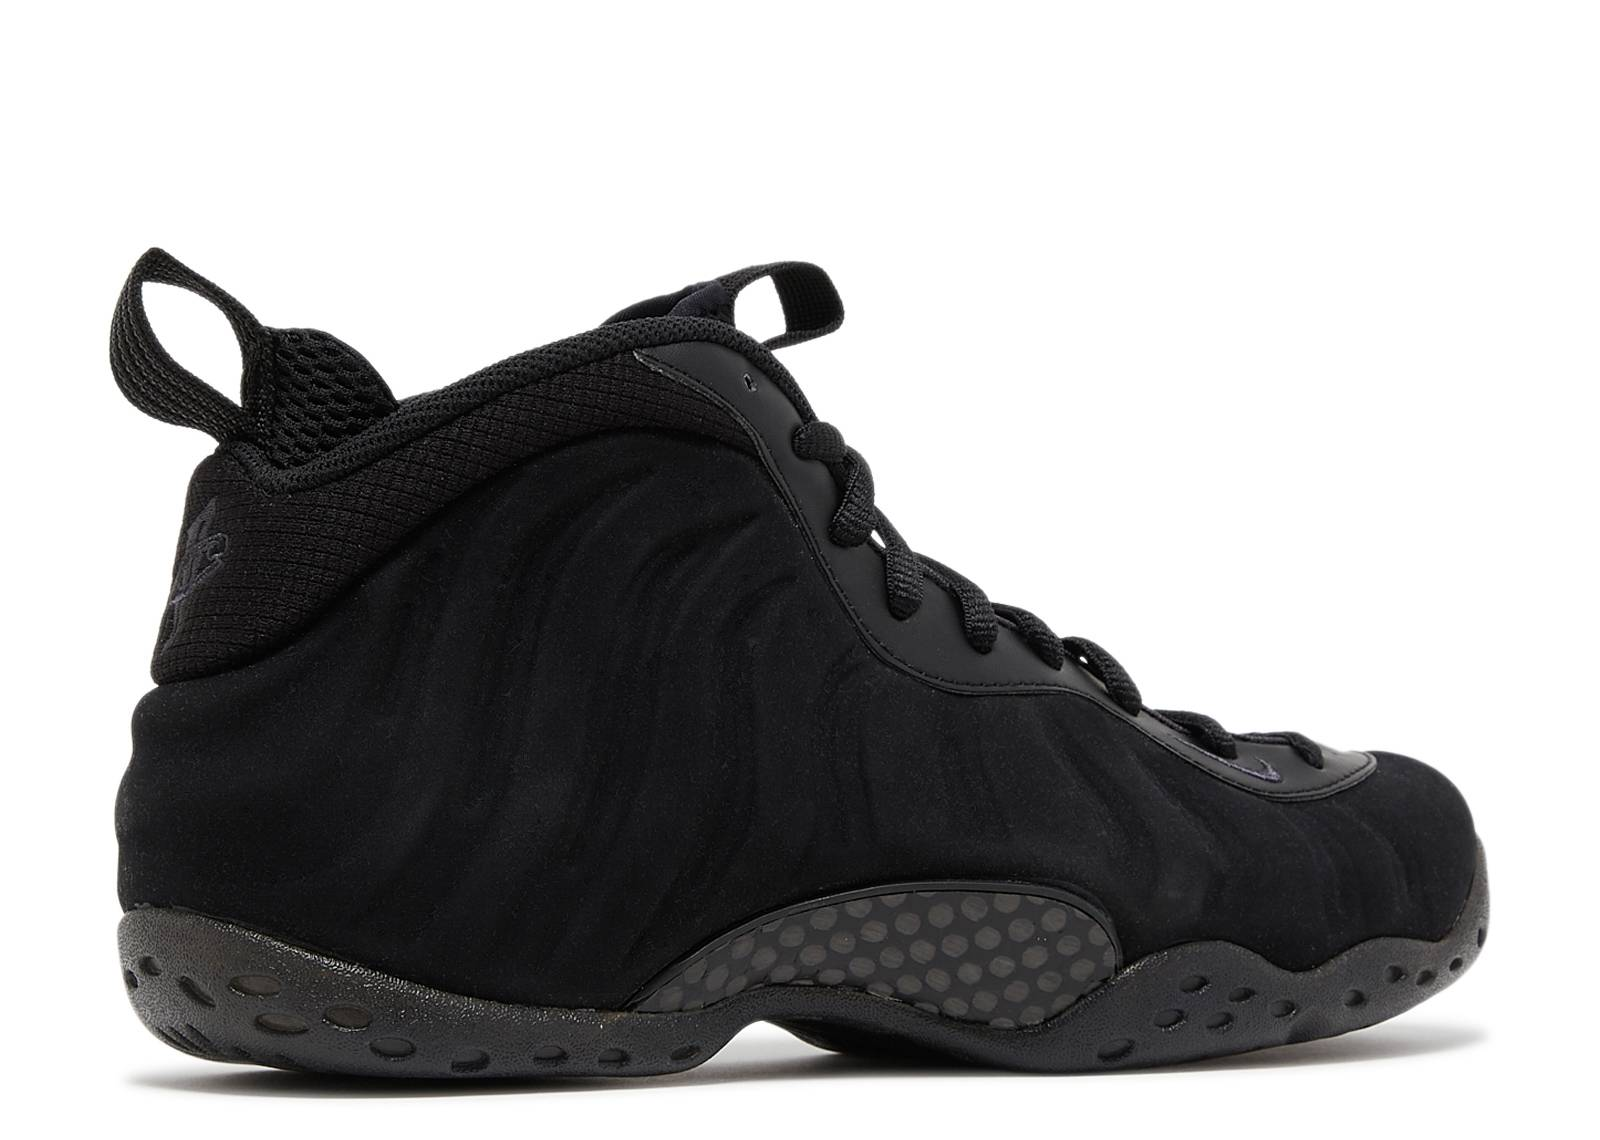 detailed look 0b361 7a58f Air Foamposite One Prm